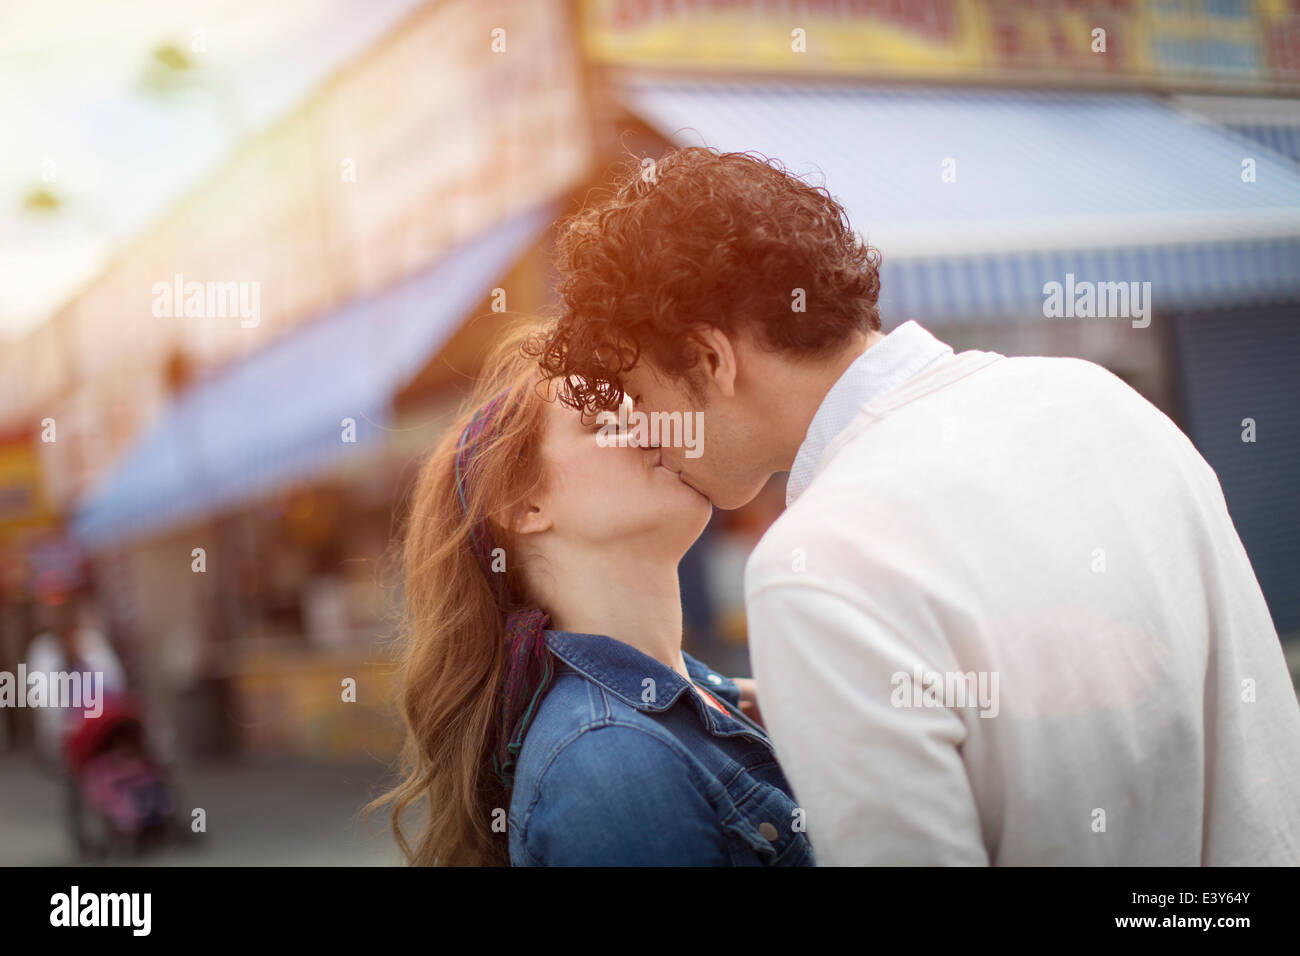 Romantic couple kissing at amusement park - Stock Image